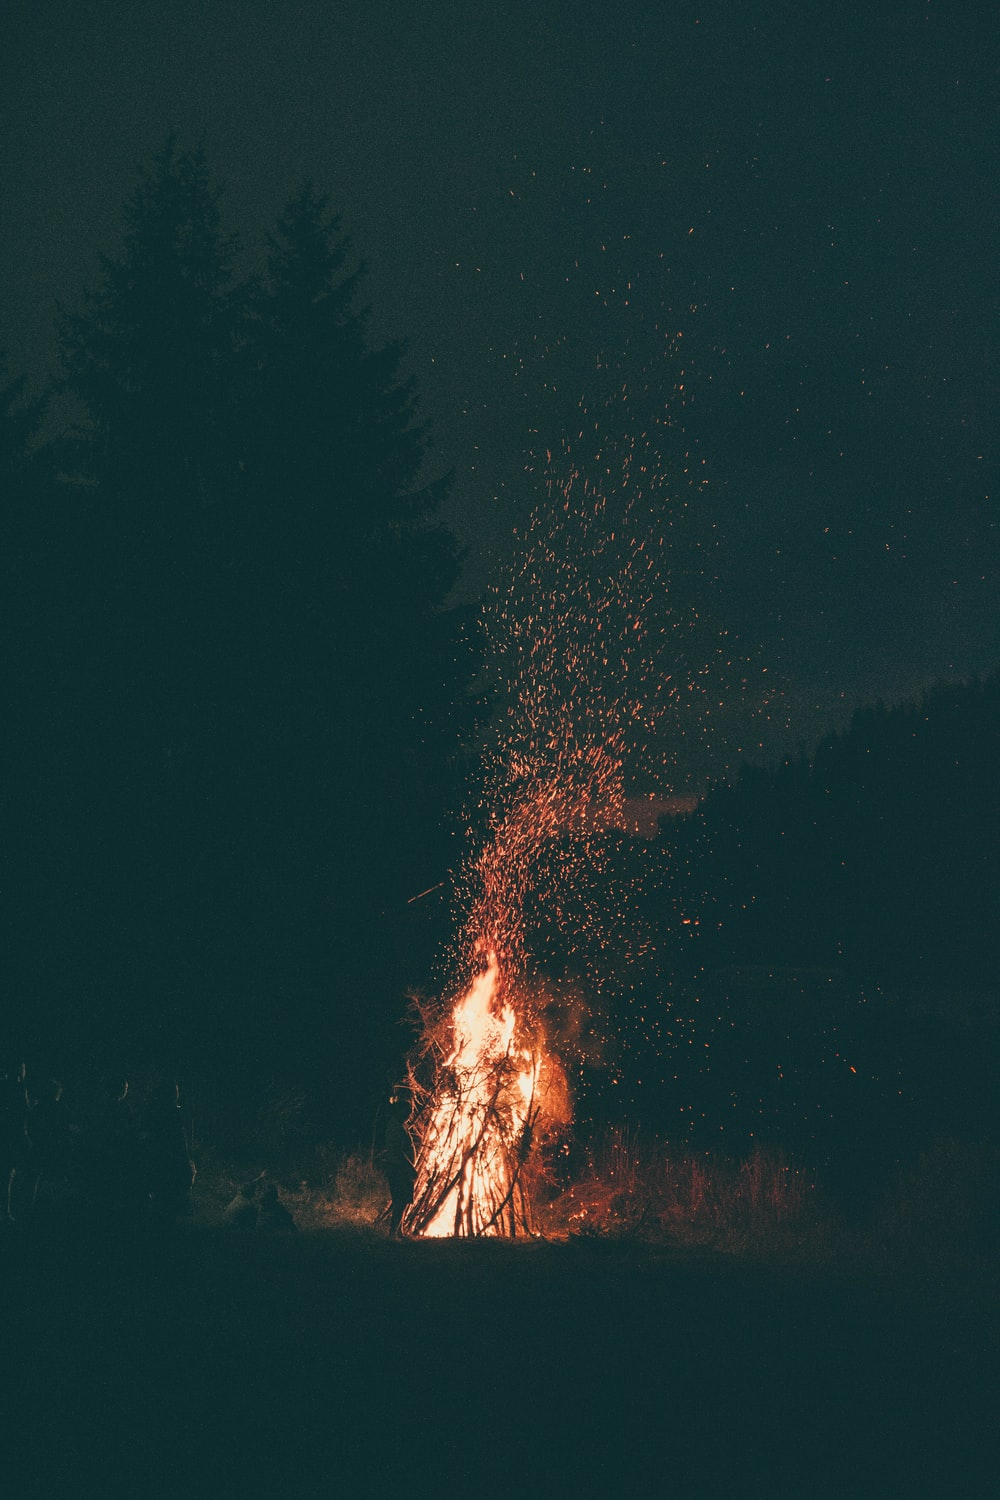 burning wood at night